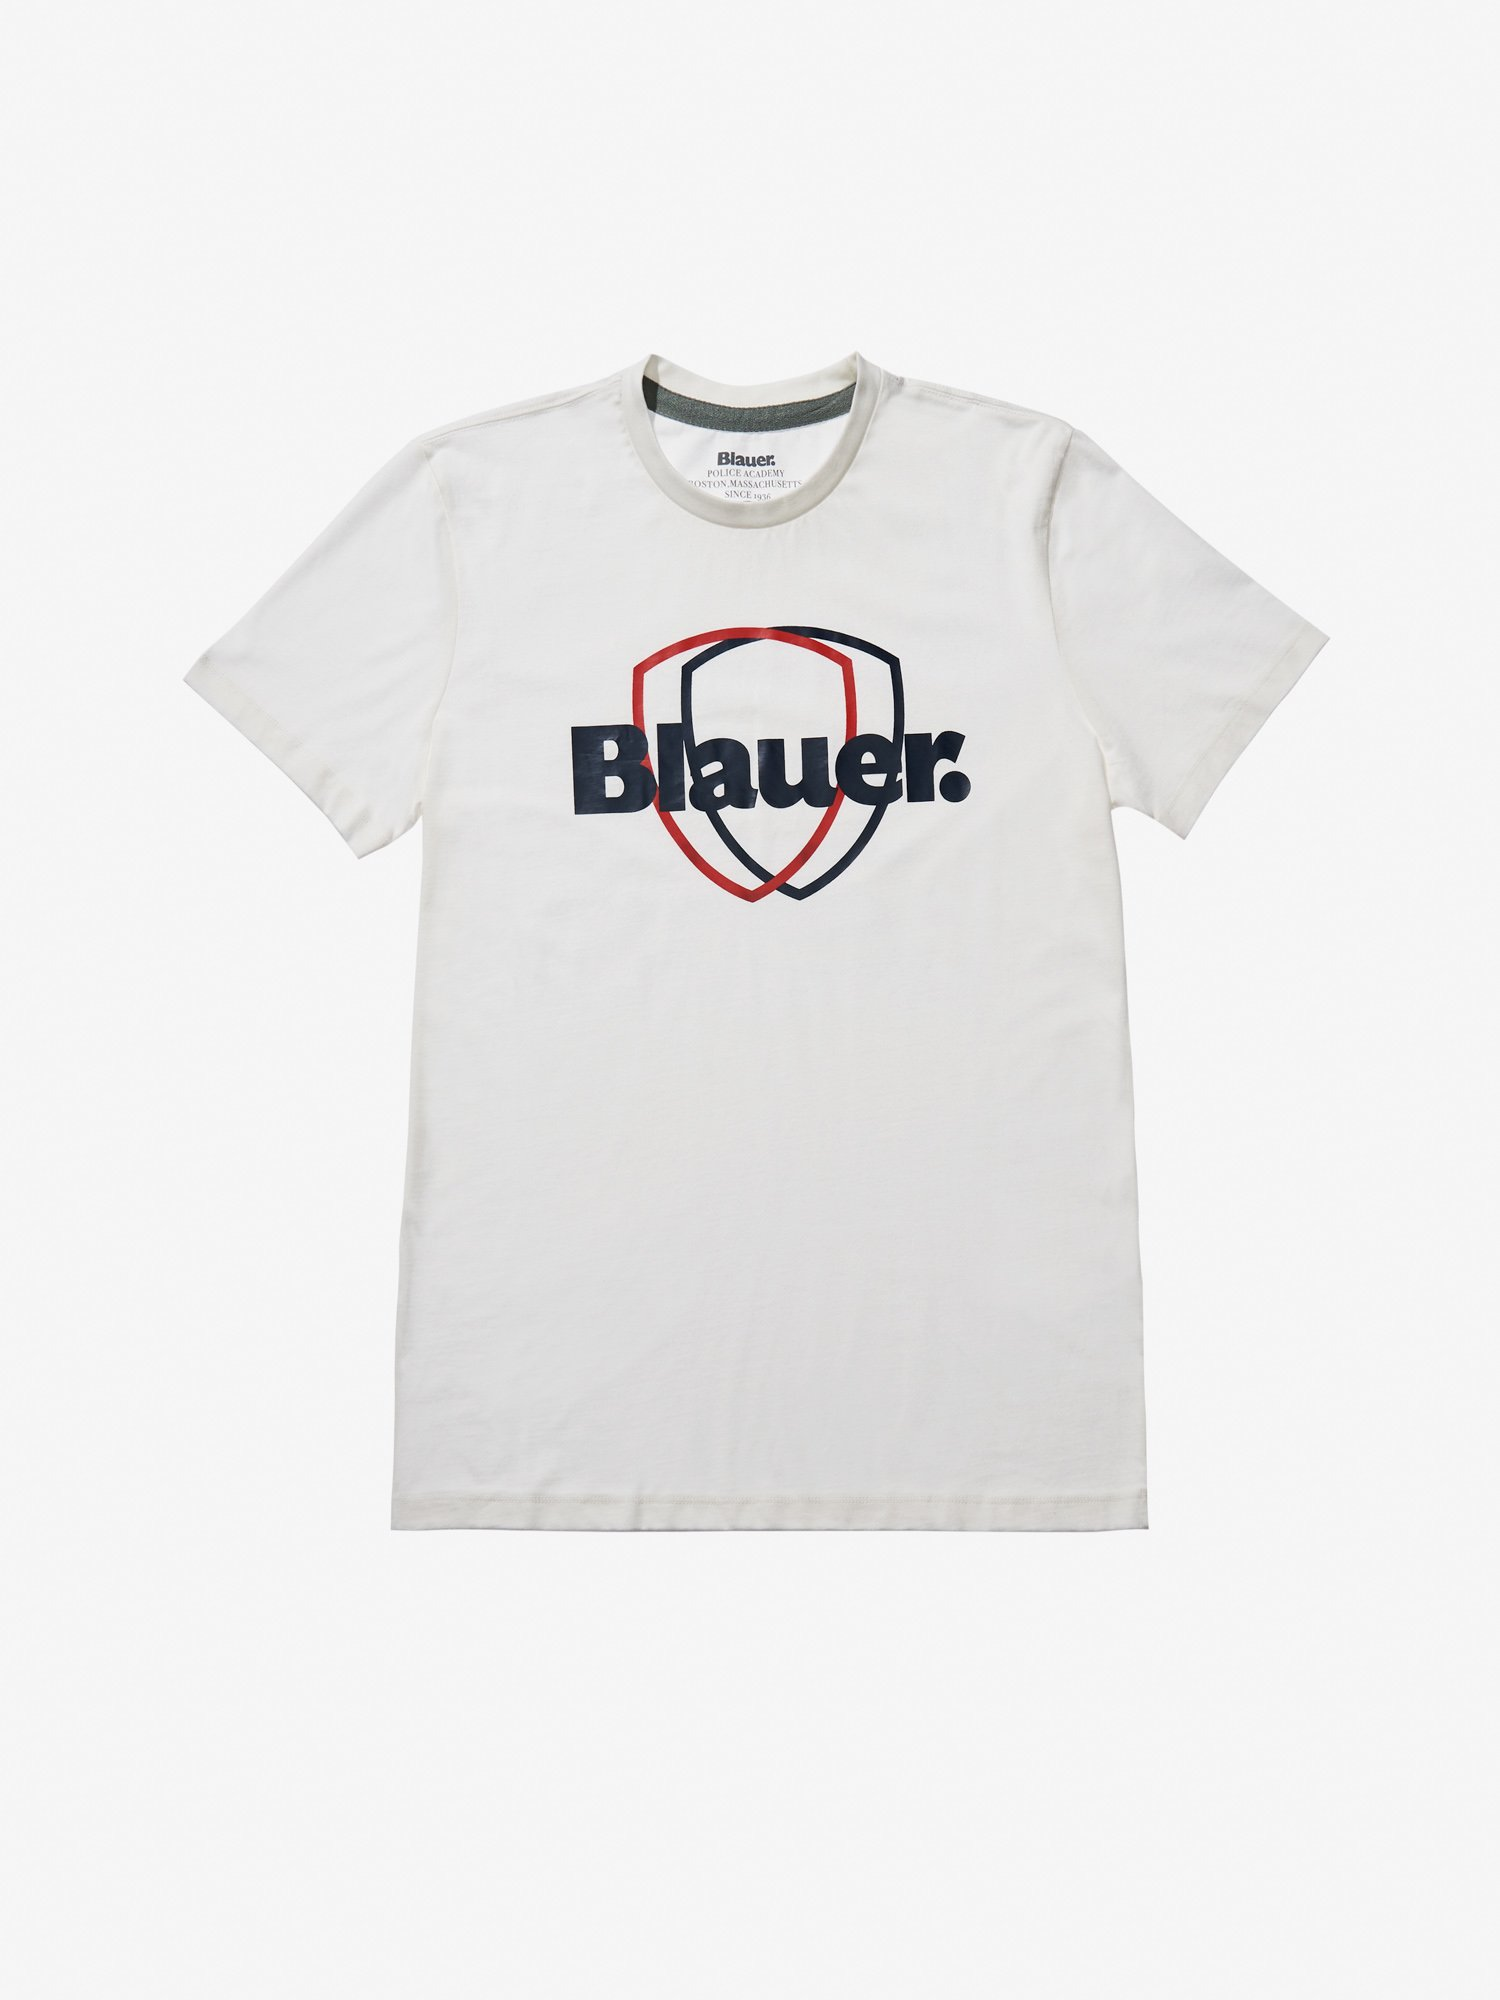 Blauer - DOUBLE SHIELD T-SHIRT - Gardenia - Blauer